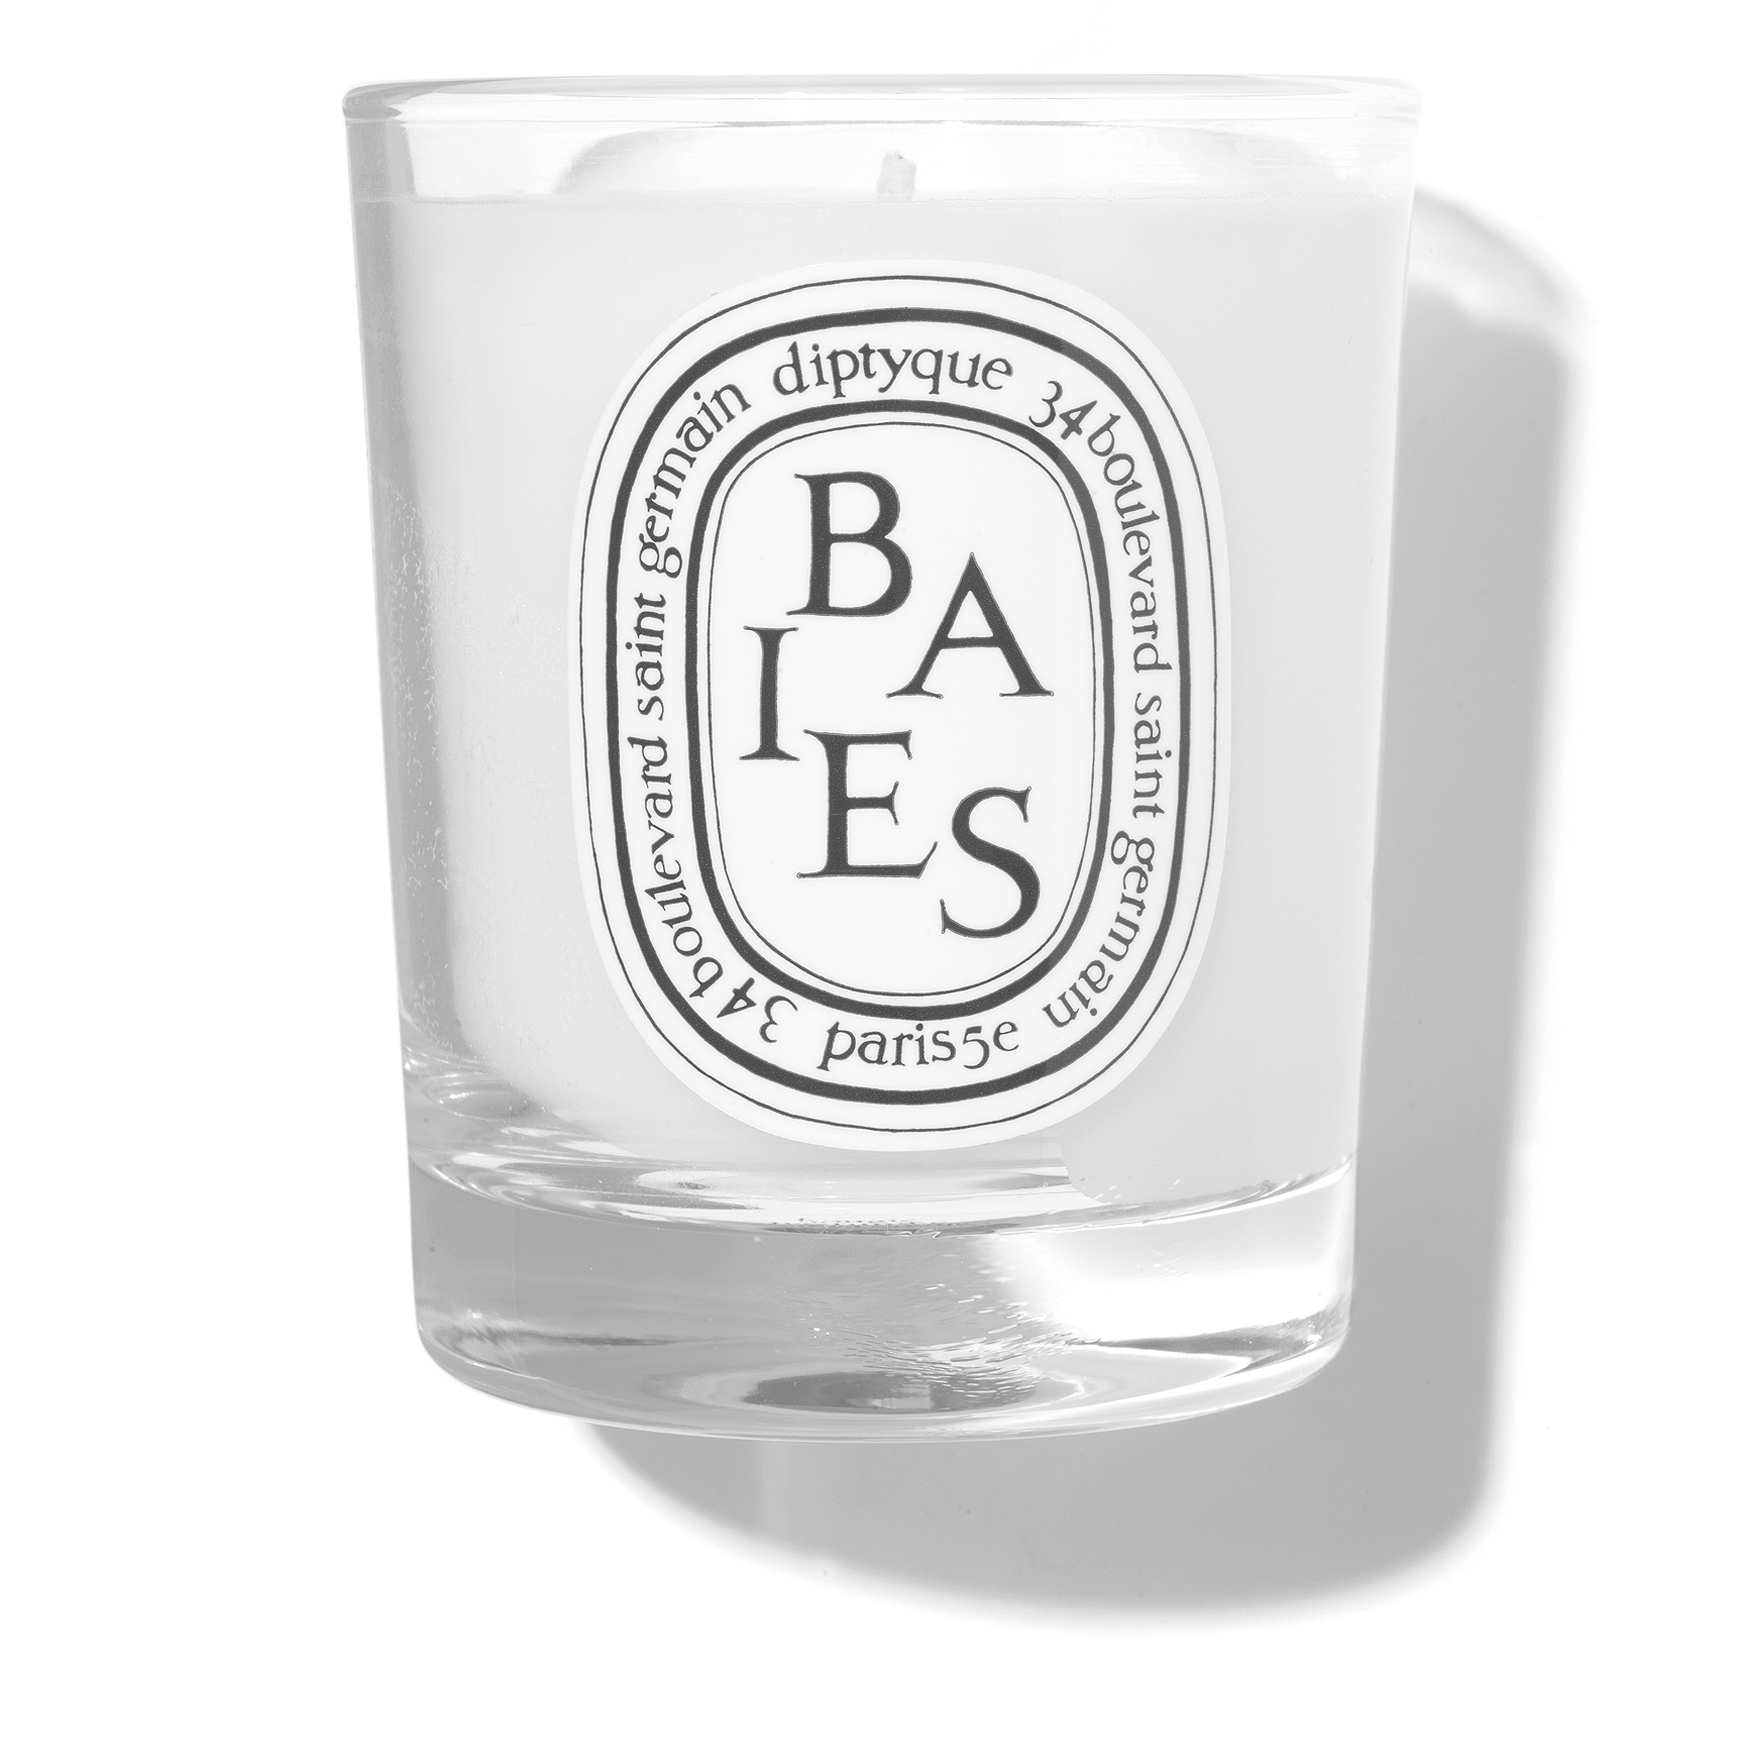 Figuier scented candle space nk gbp for Where to buy diptyque candles